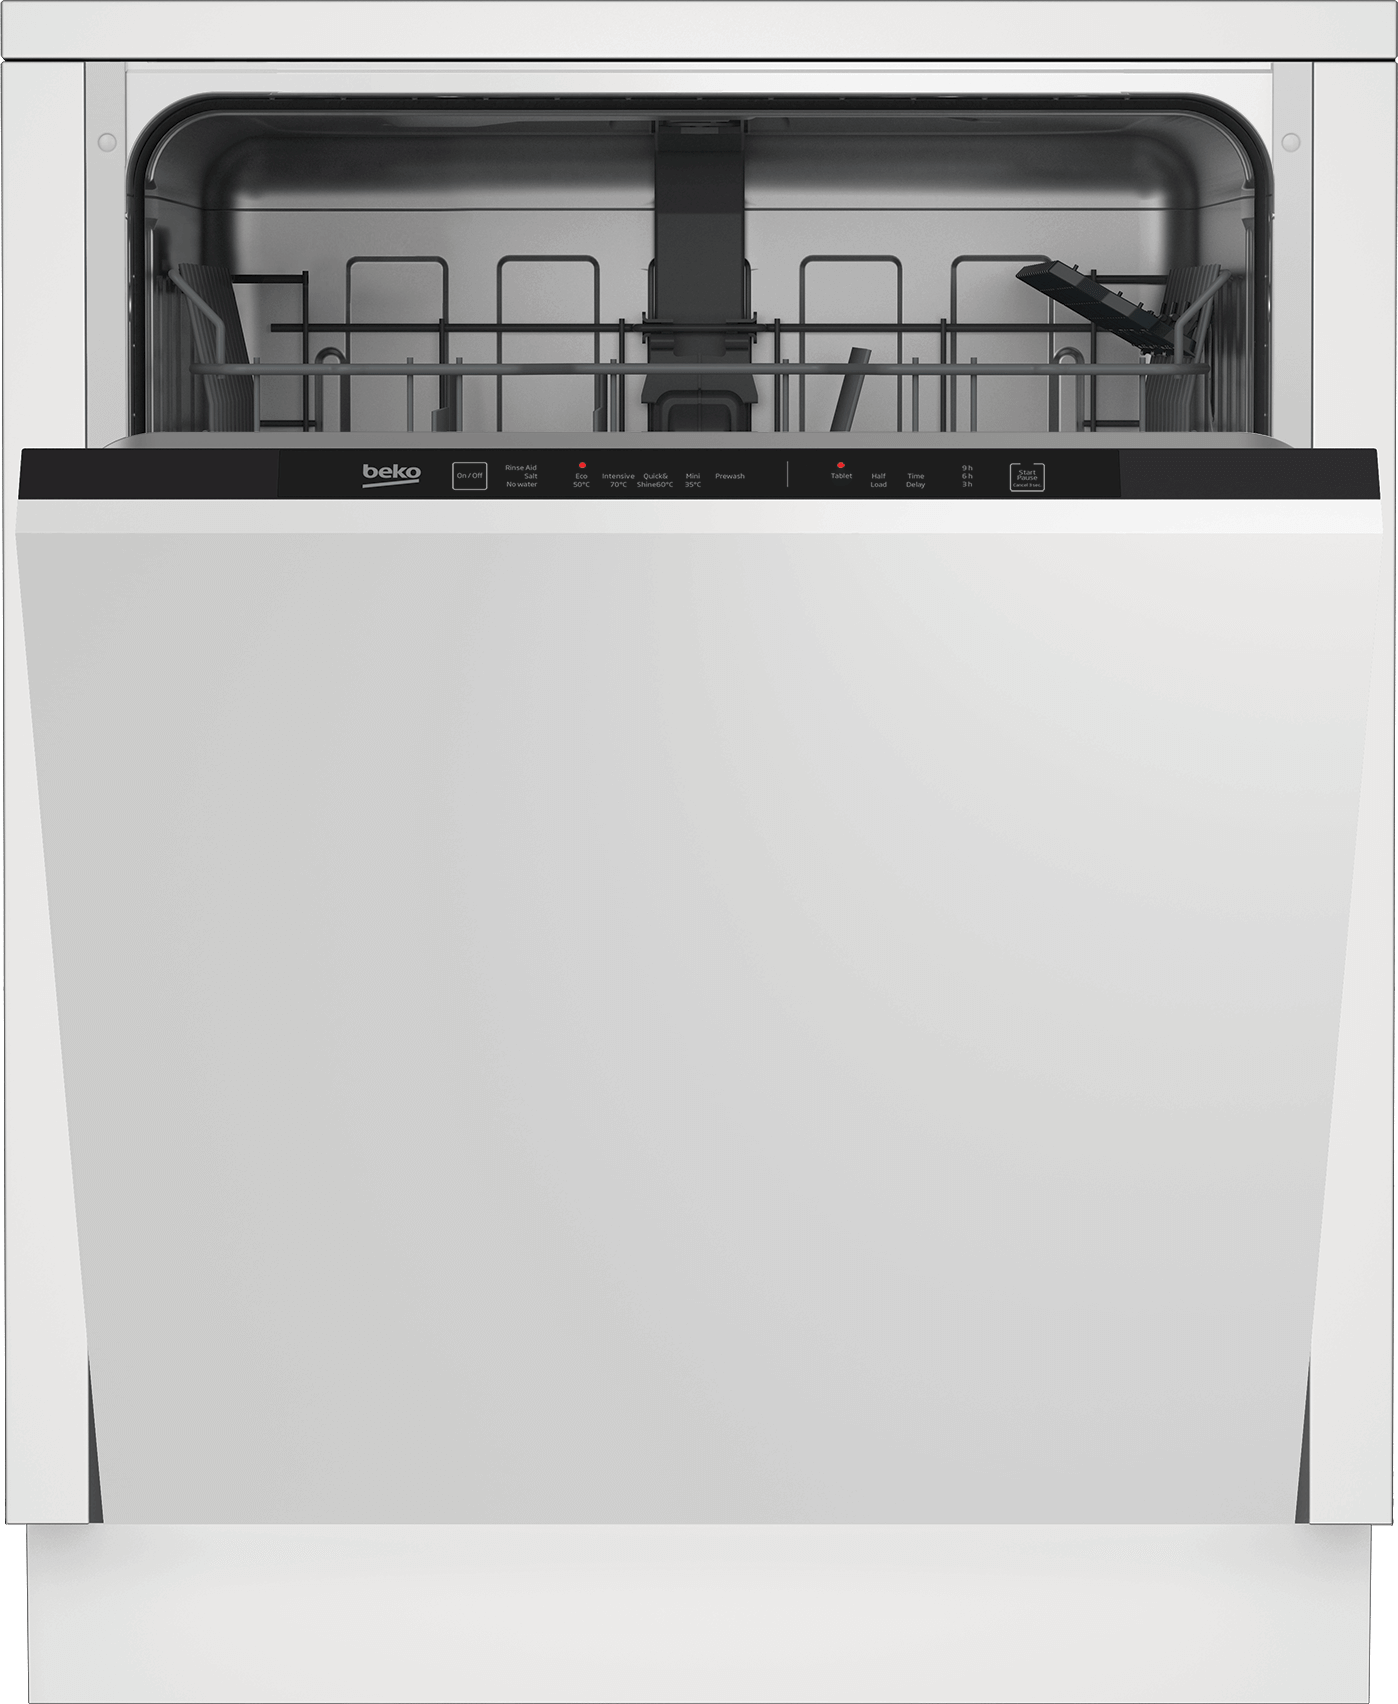 Dishwasher (13 place settings, Full-size) DIN15311